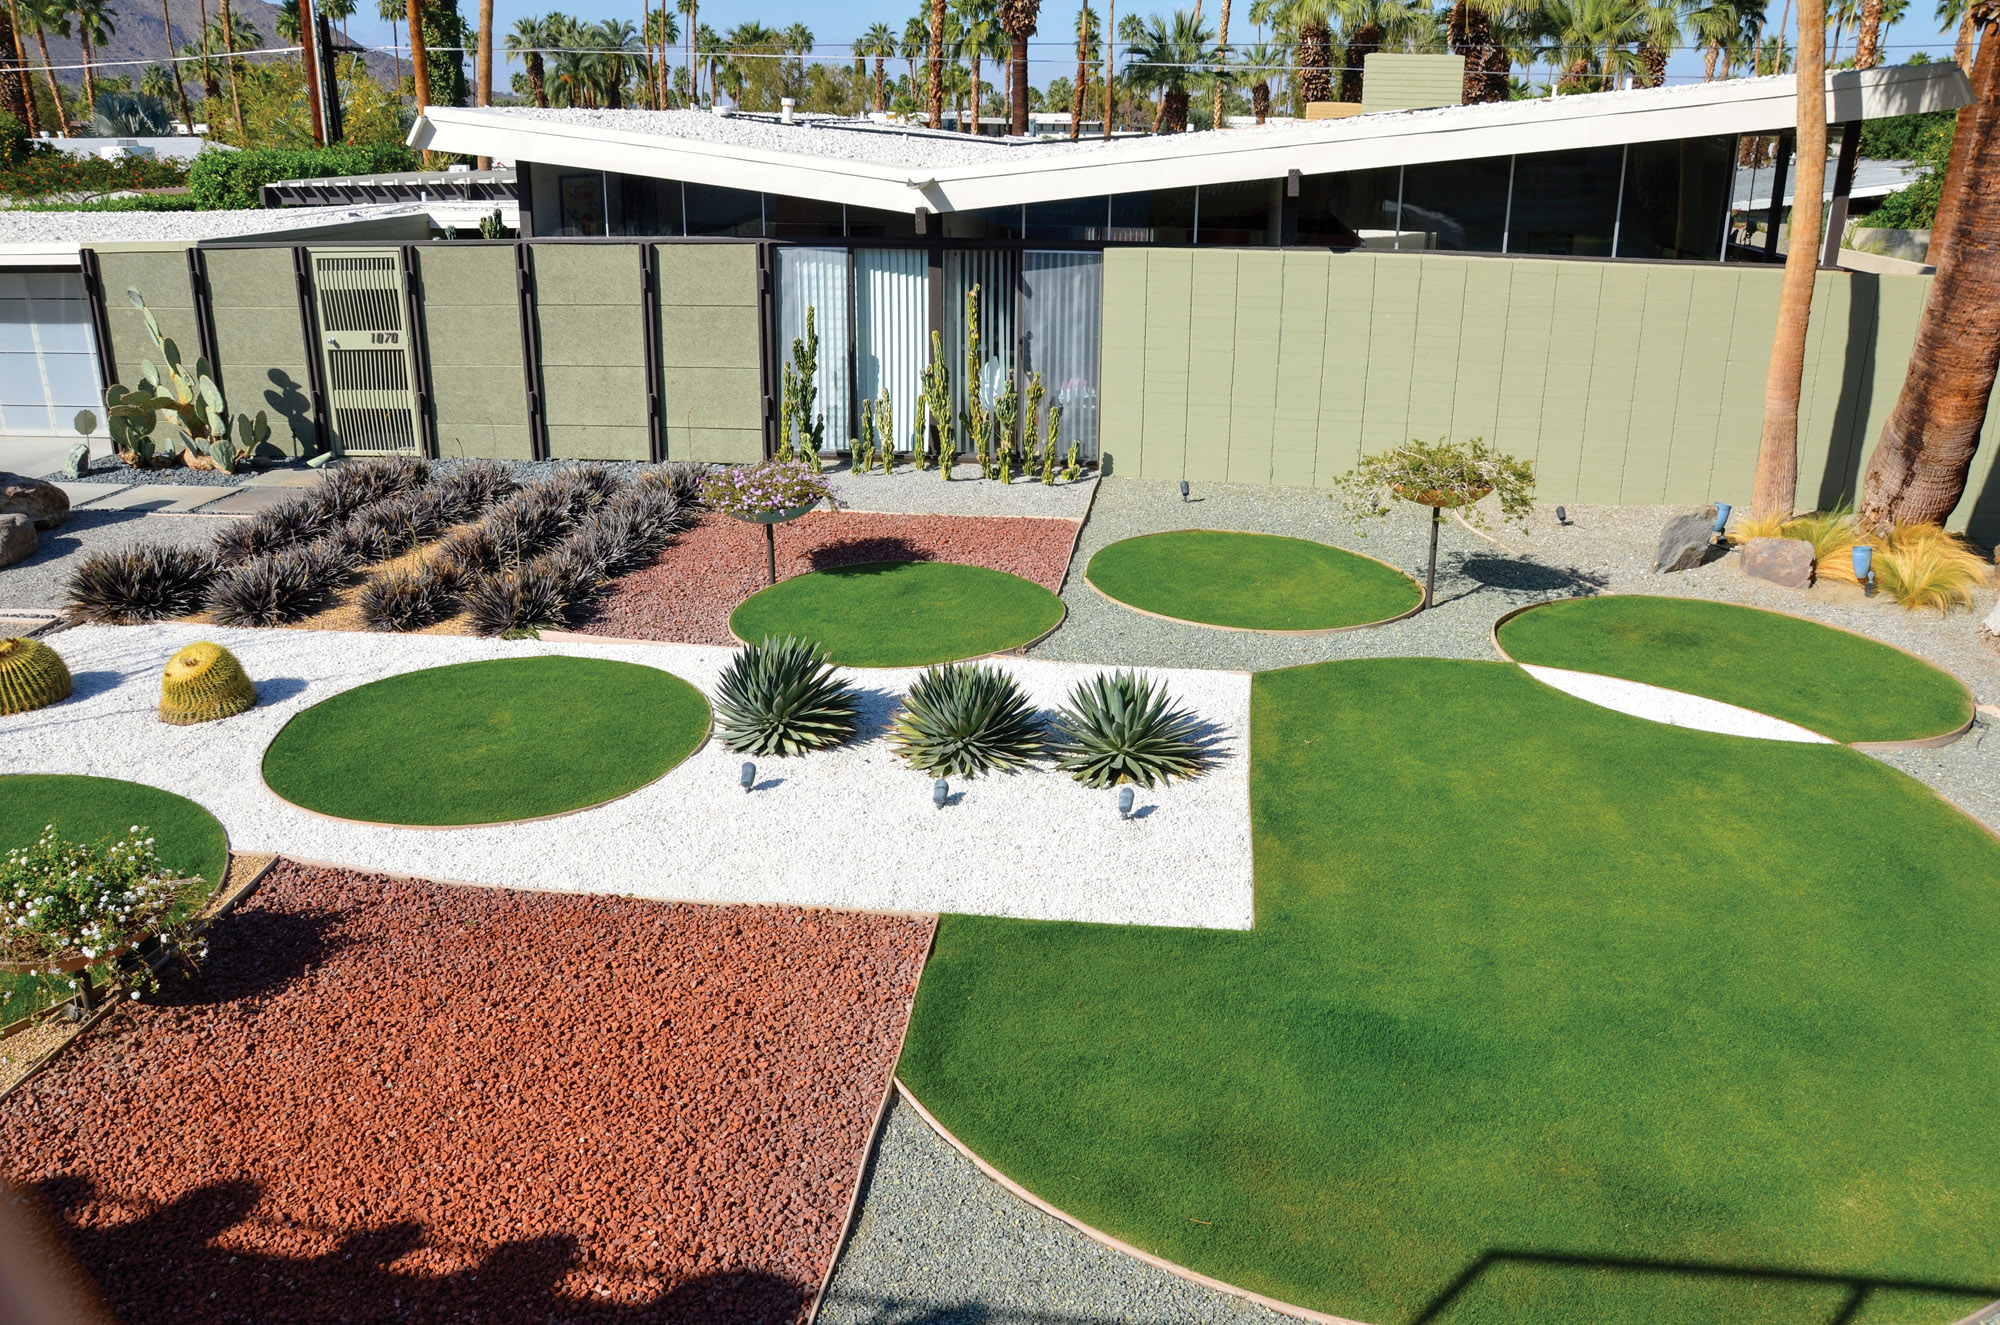 Modern Outdoor Spaces for Yard & Patio